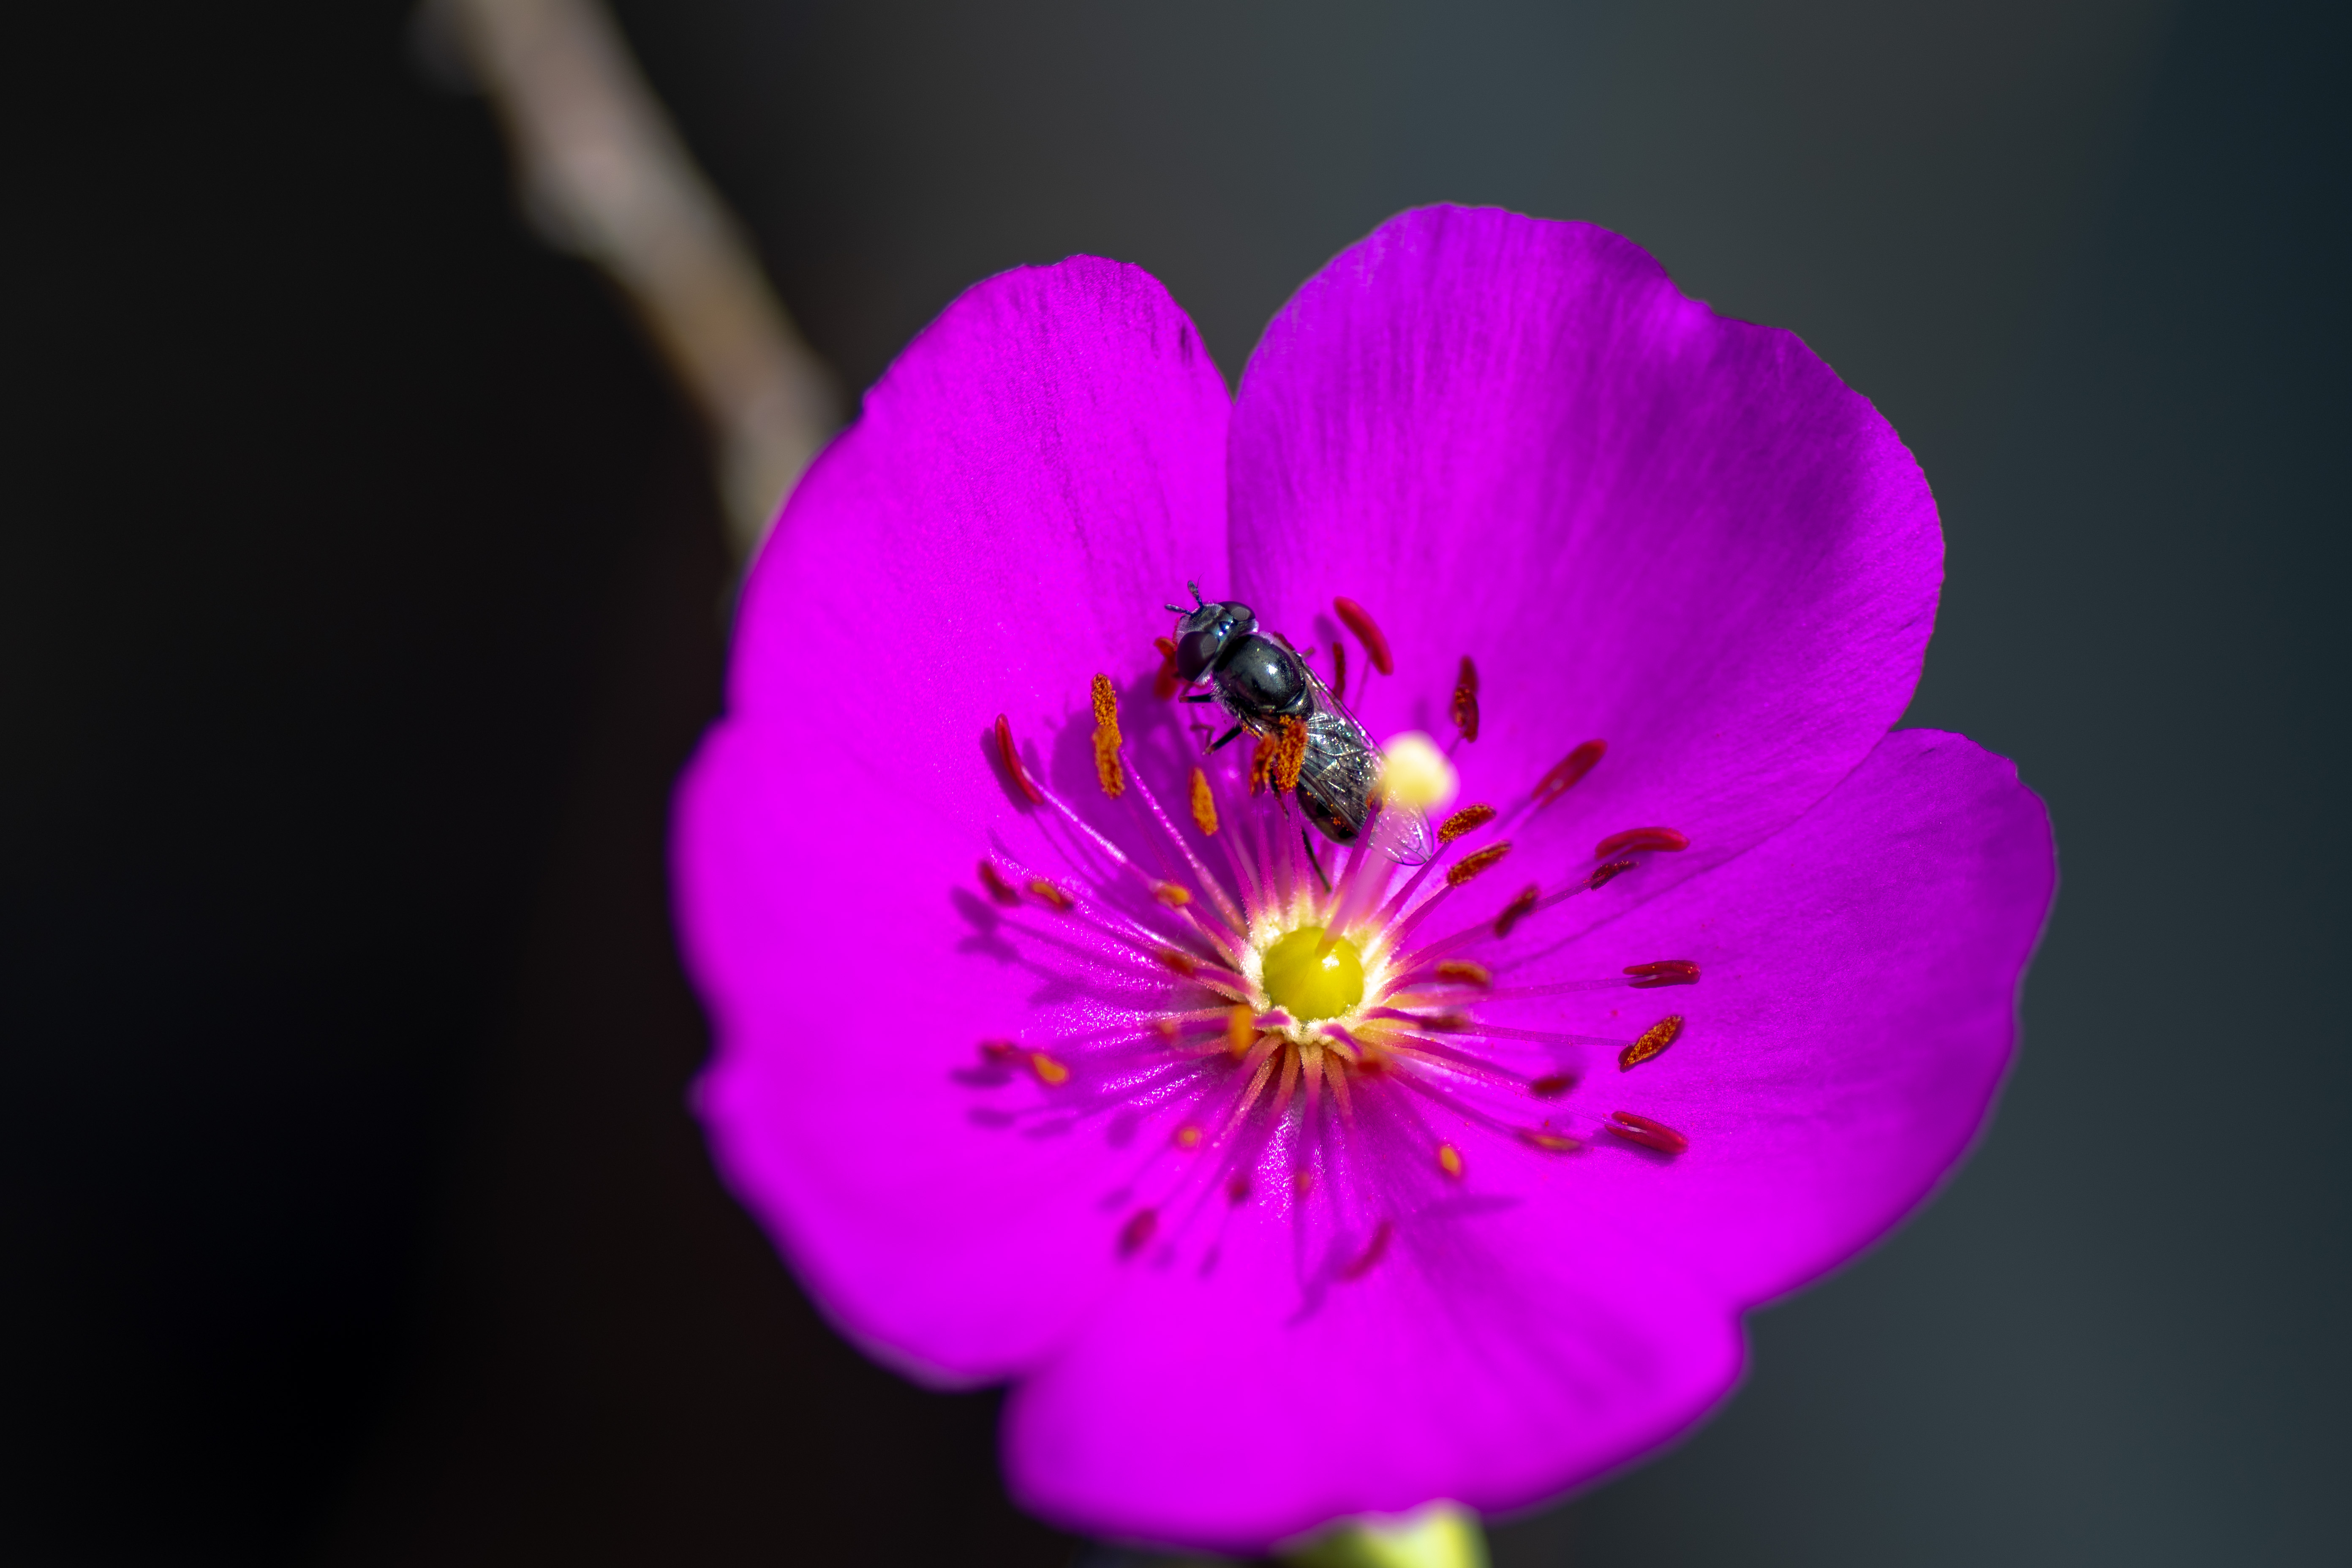 A purple flower with a tiny ant on a petal